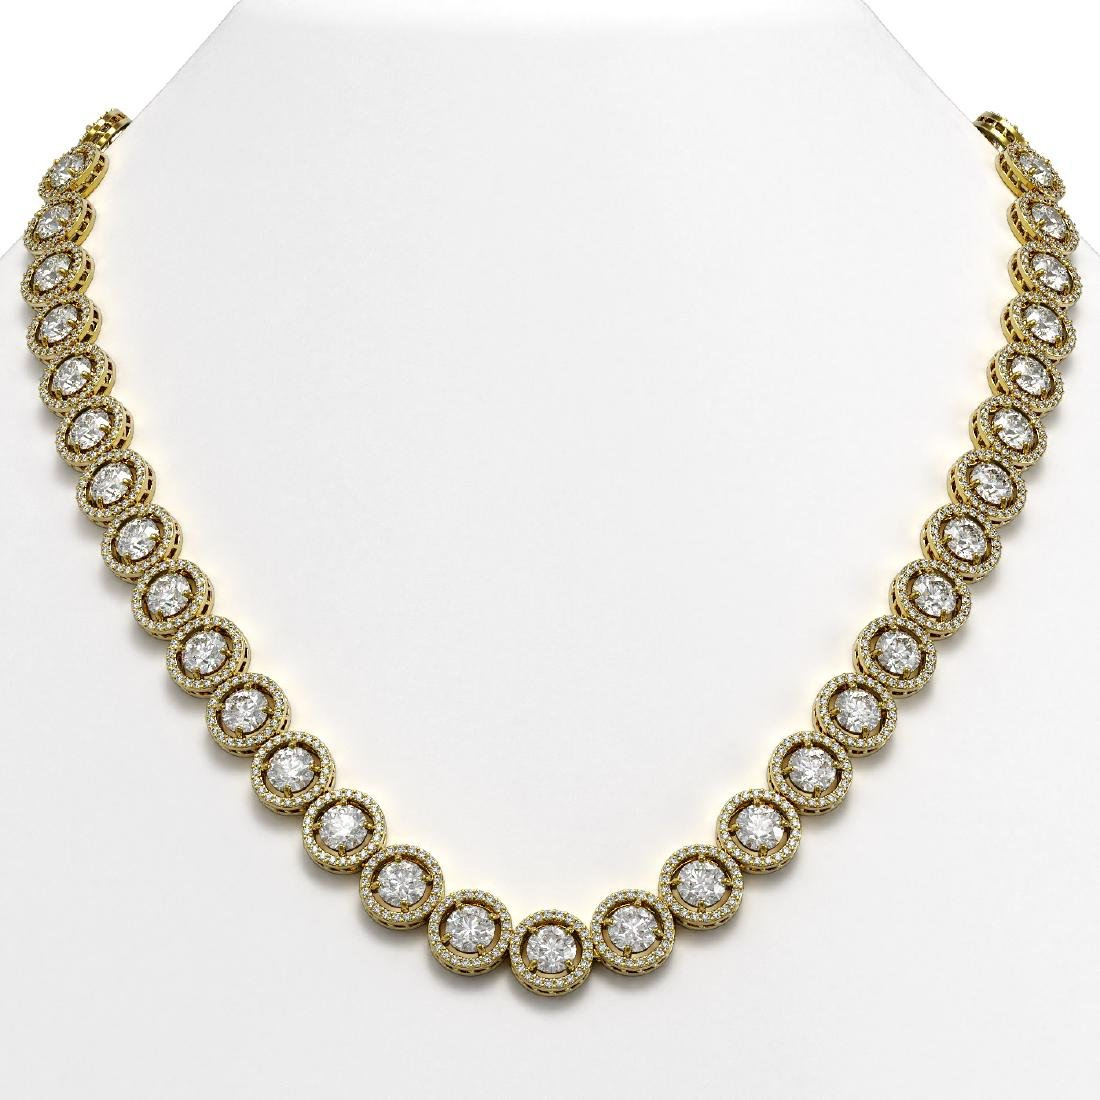 35.32 CTW Diamond Designer Necklace 18K Yellow Gold